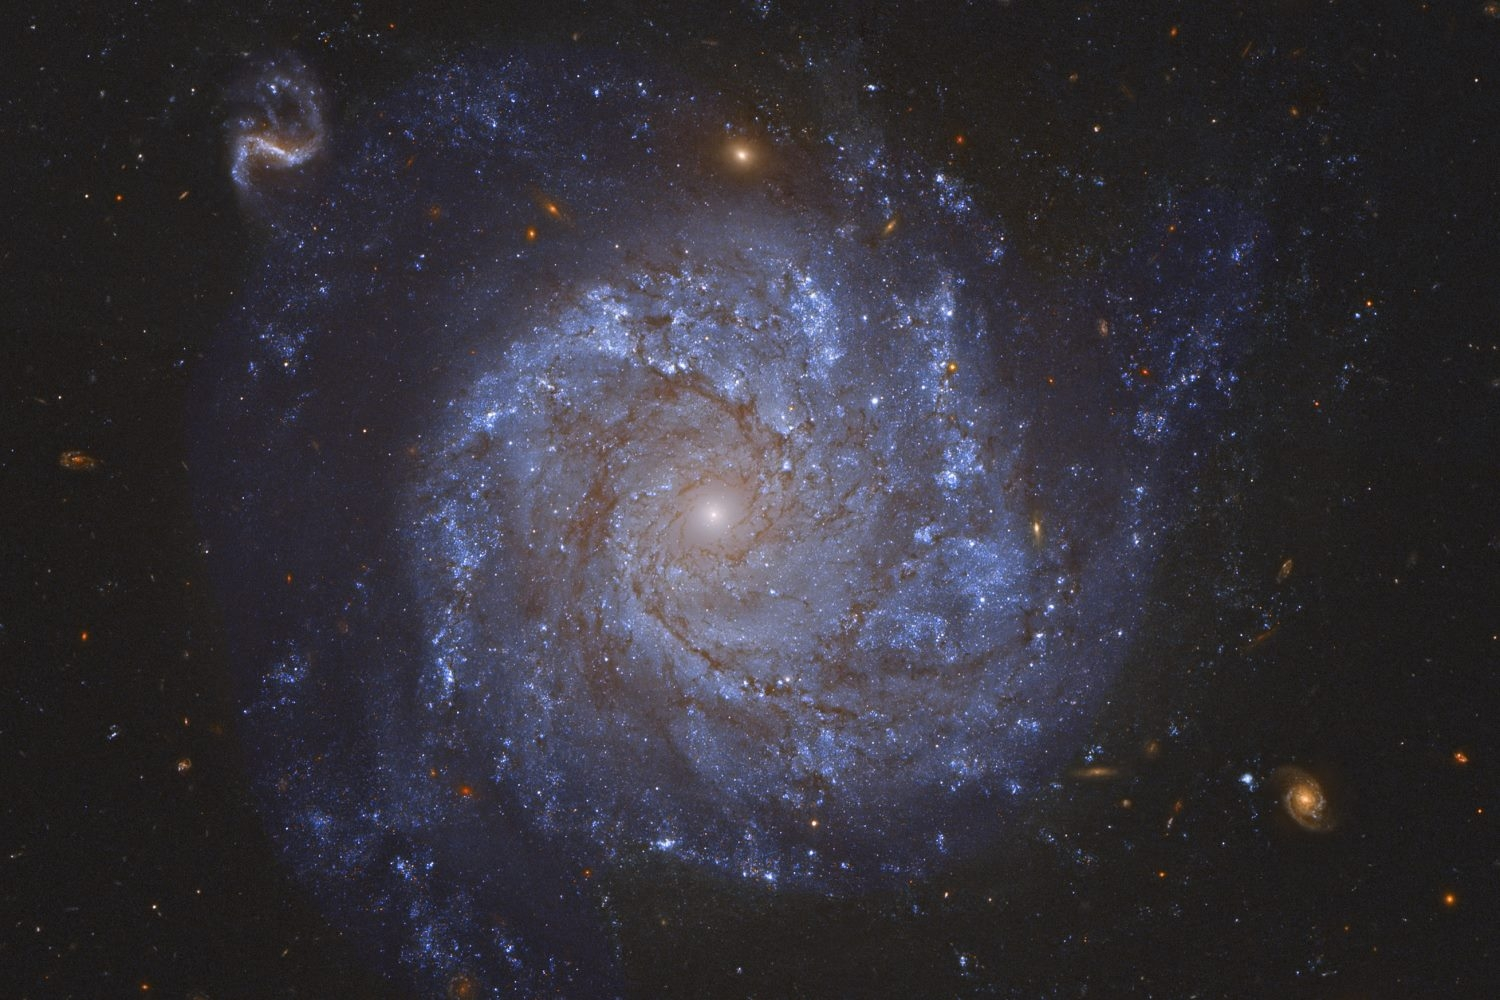 NASA's Hubble Finds a 'Zombie' Star in Spiral Galaxy